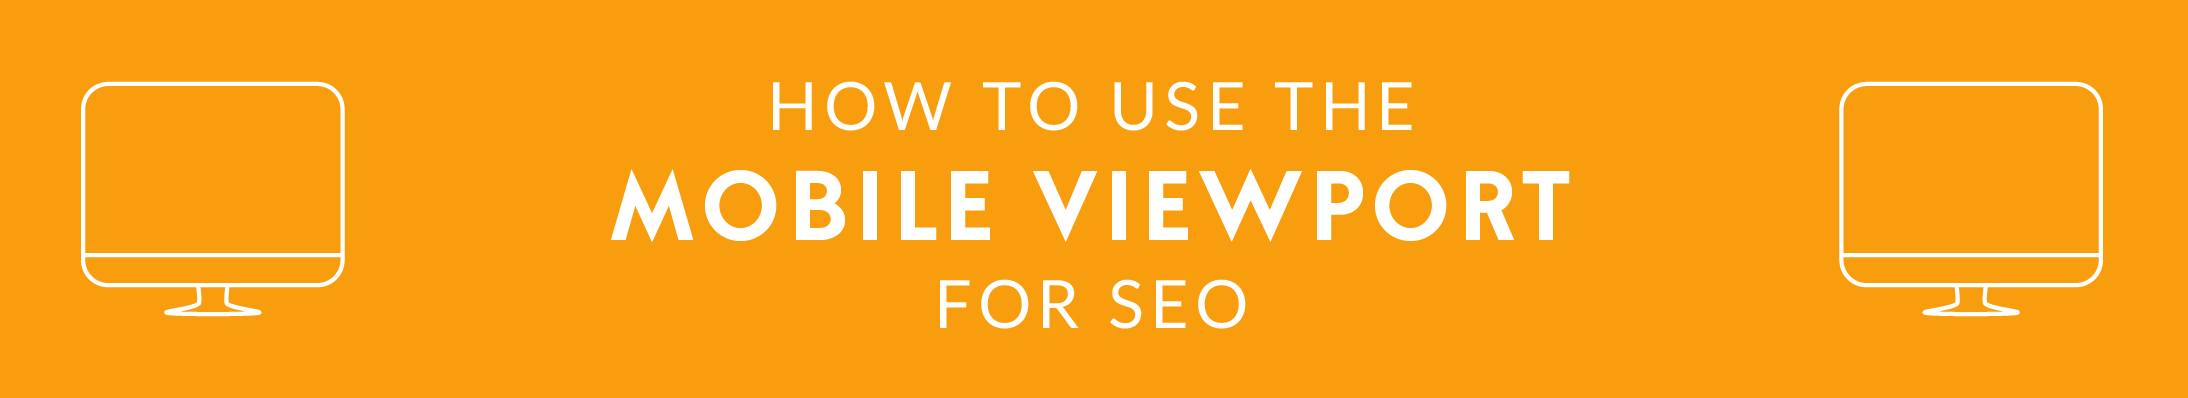 How to Use the Mobile Viewport for SEO